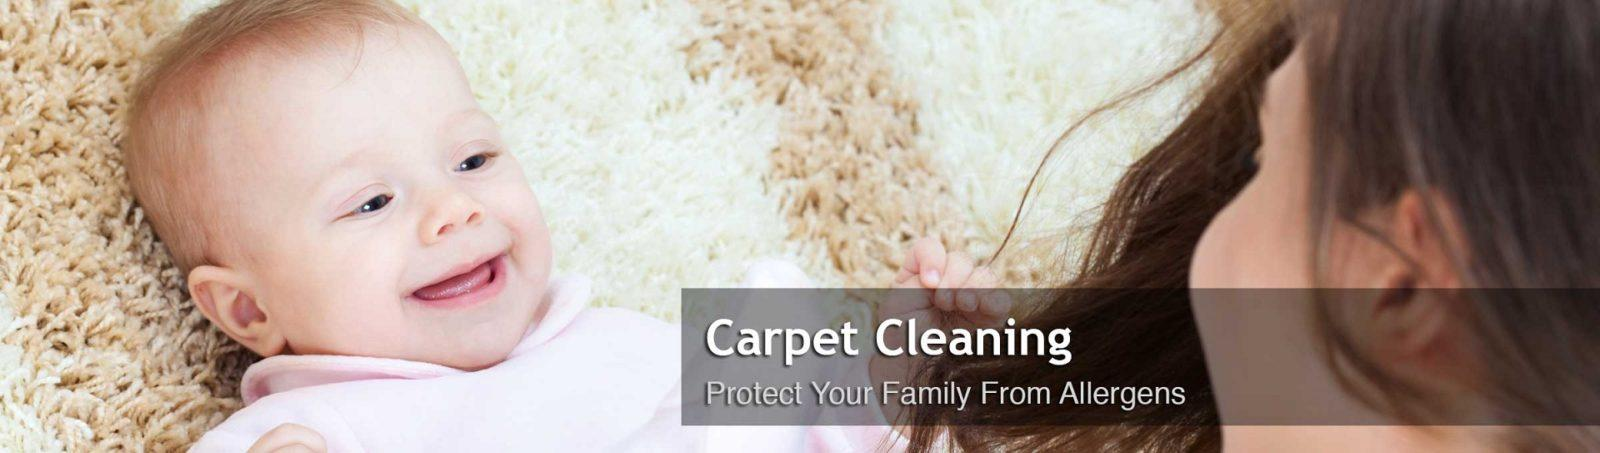 tim carpet cleaning banner